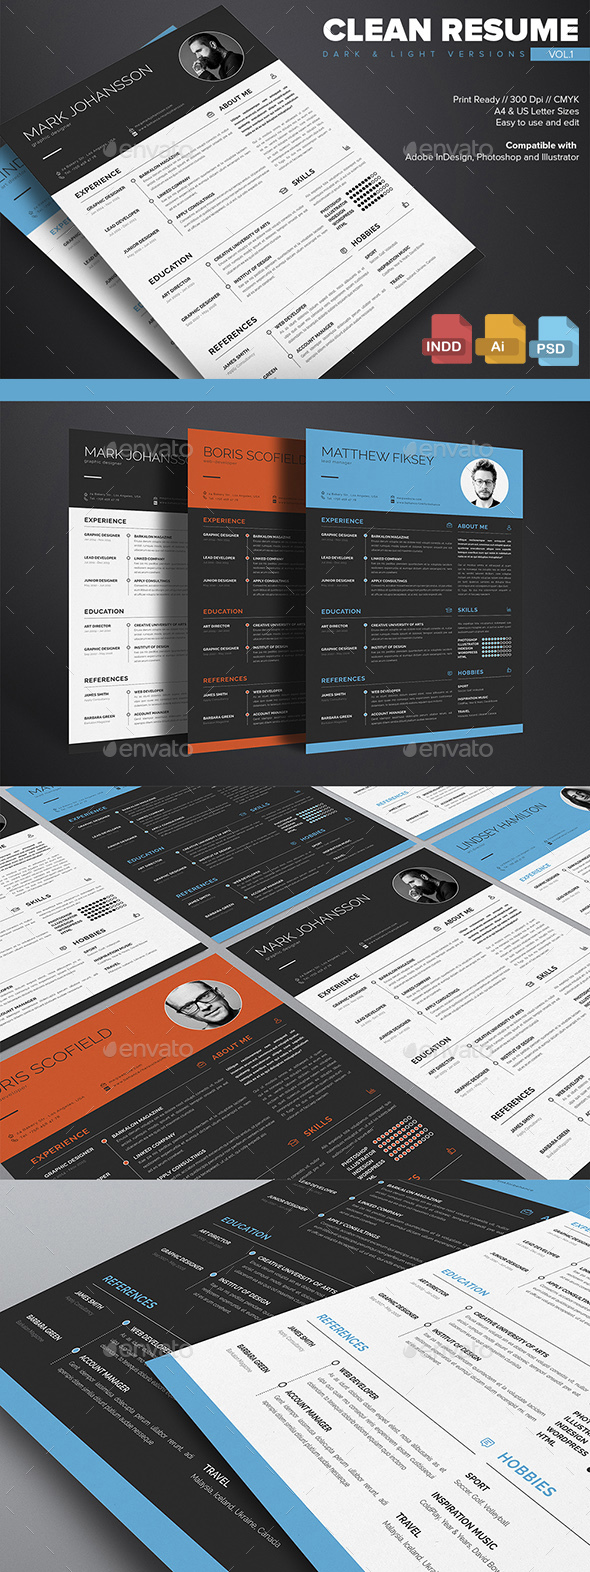 Clean Resume Template Vol.1 - Resumes Stationery